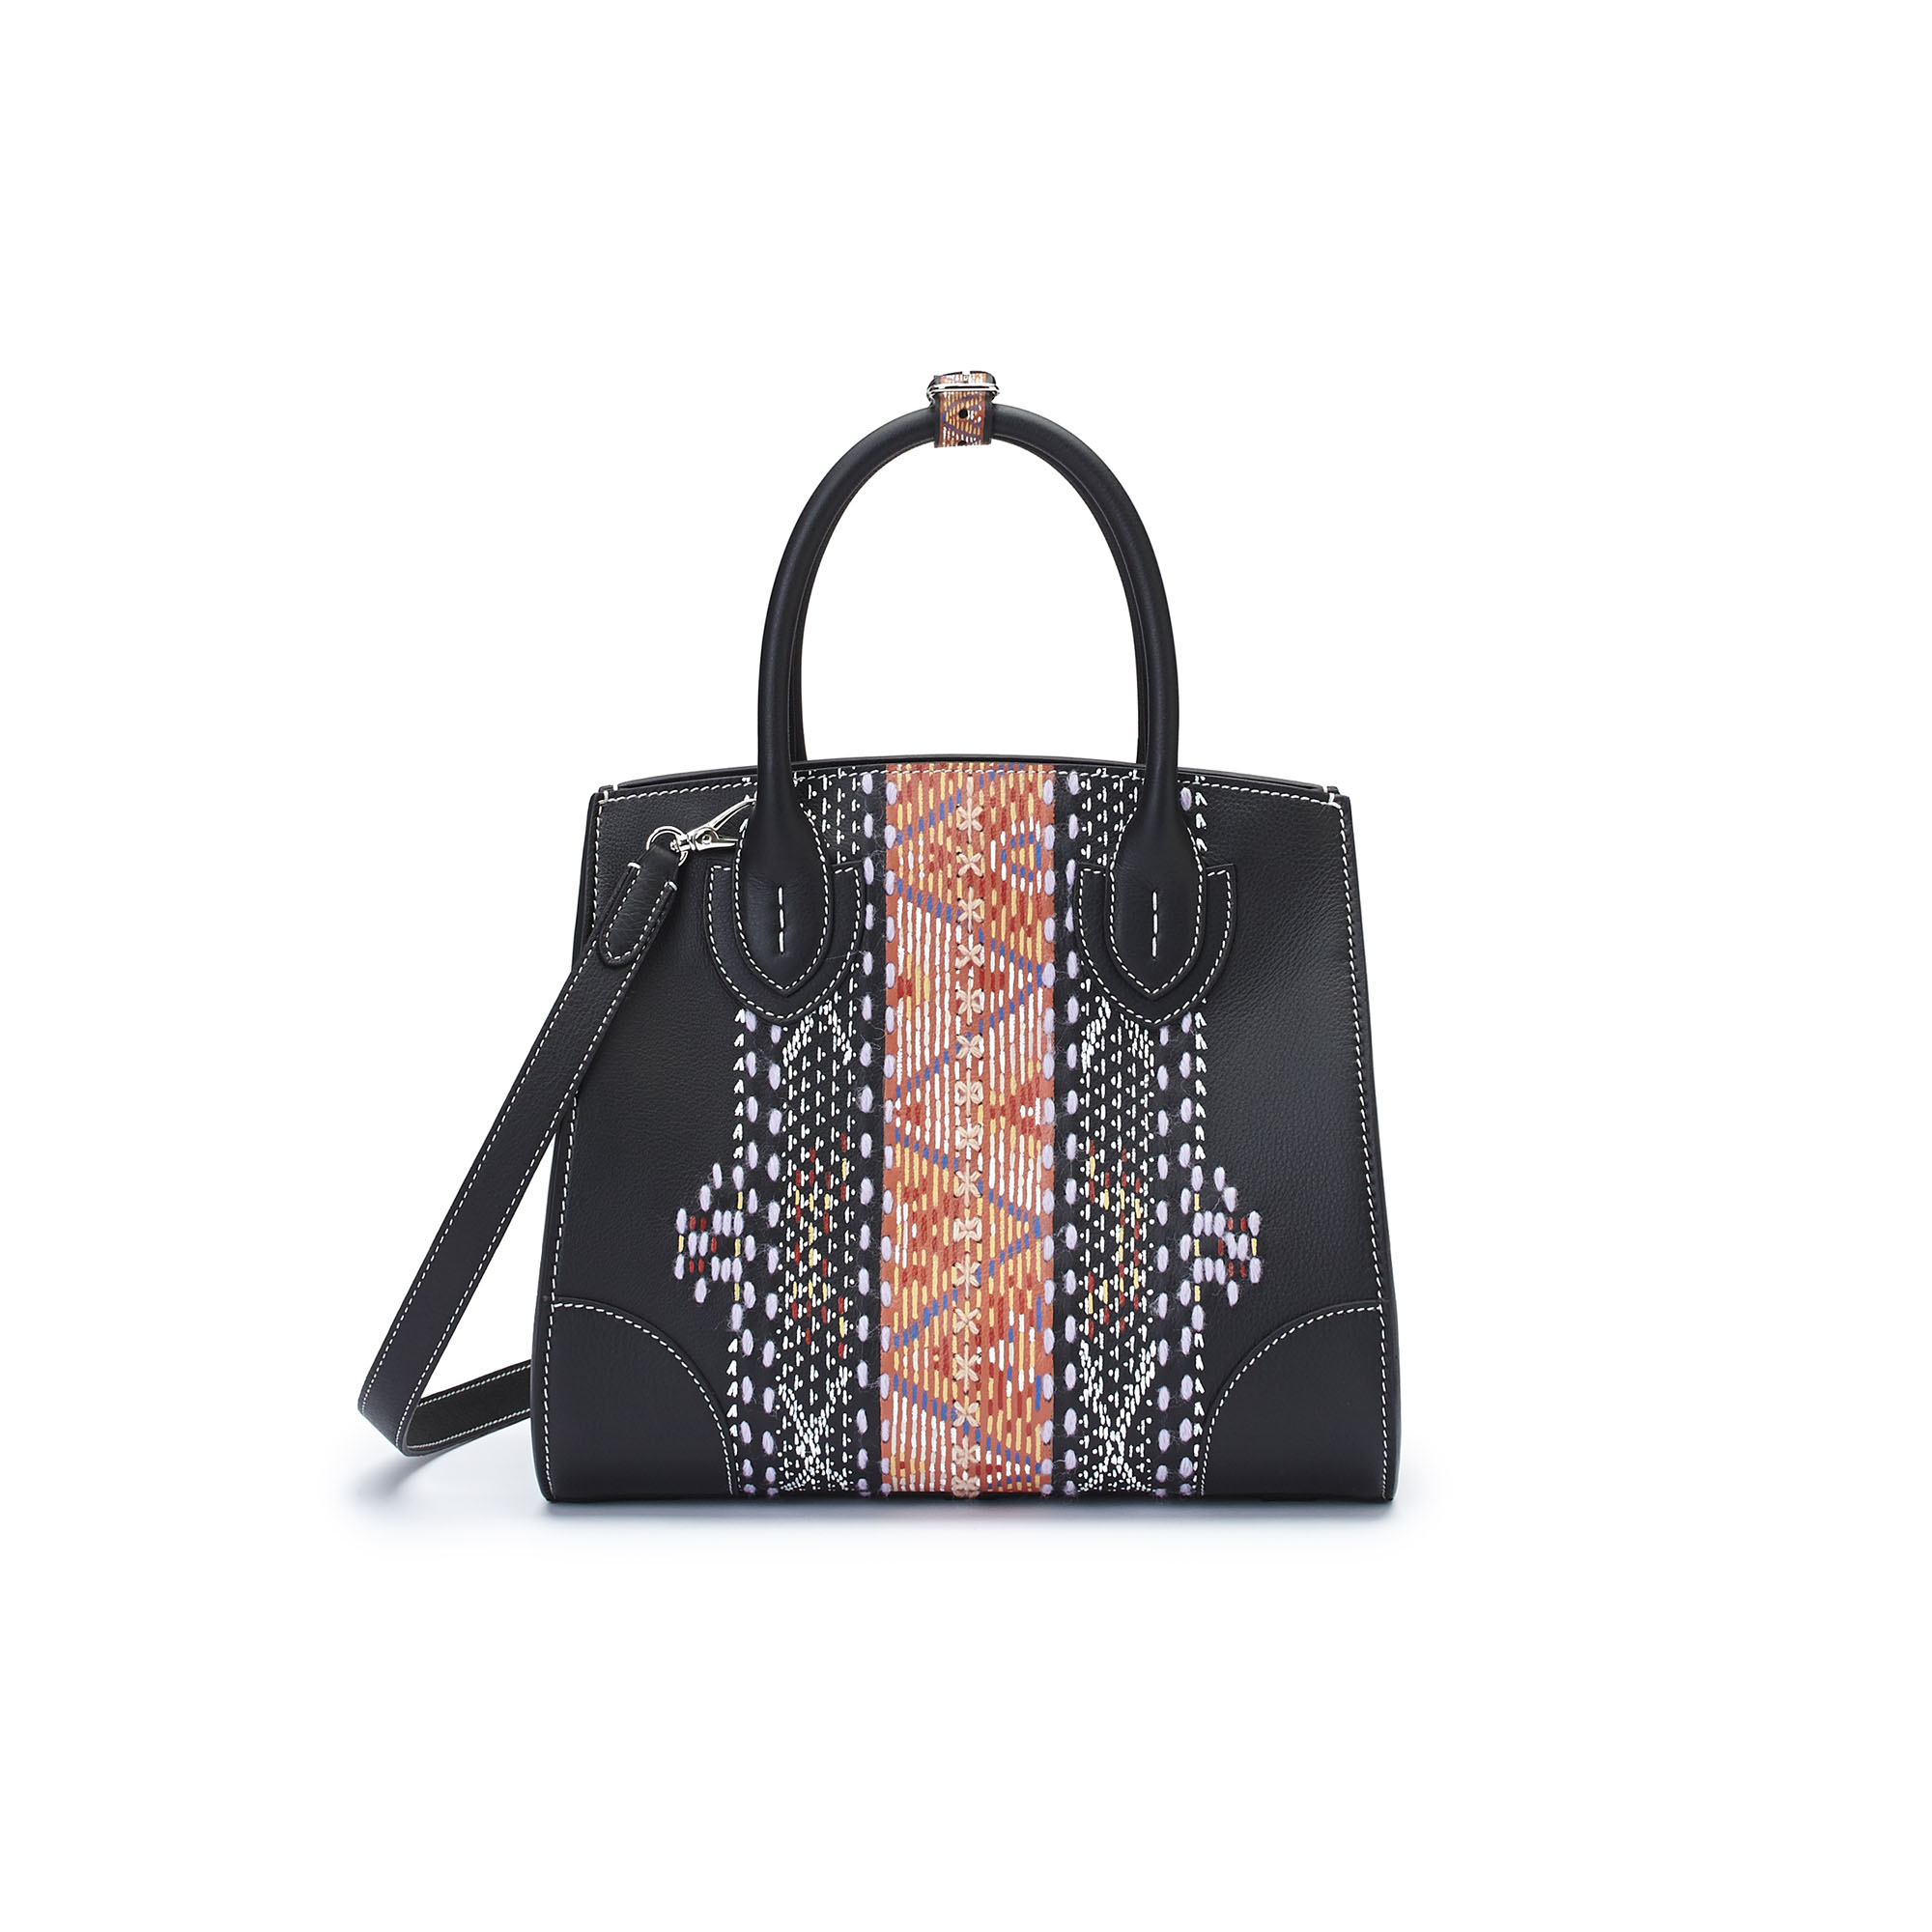 The black soft calf with carpet embroidered and painted by hand Darcy bag by Bertoni 1949 03